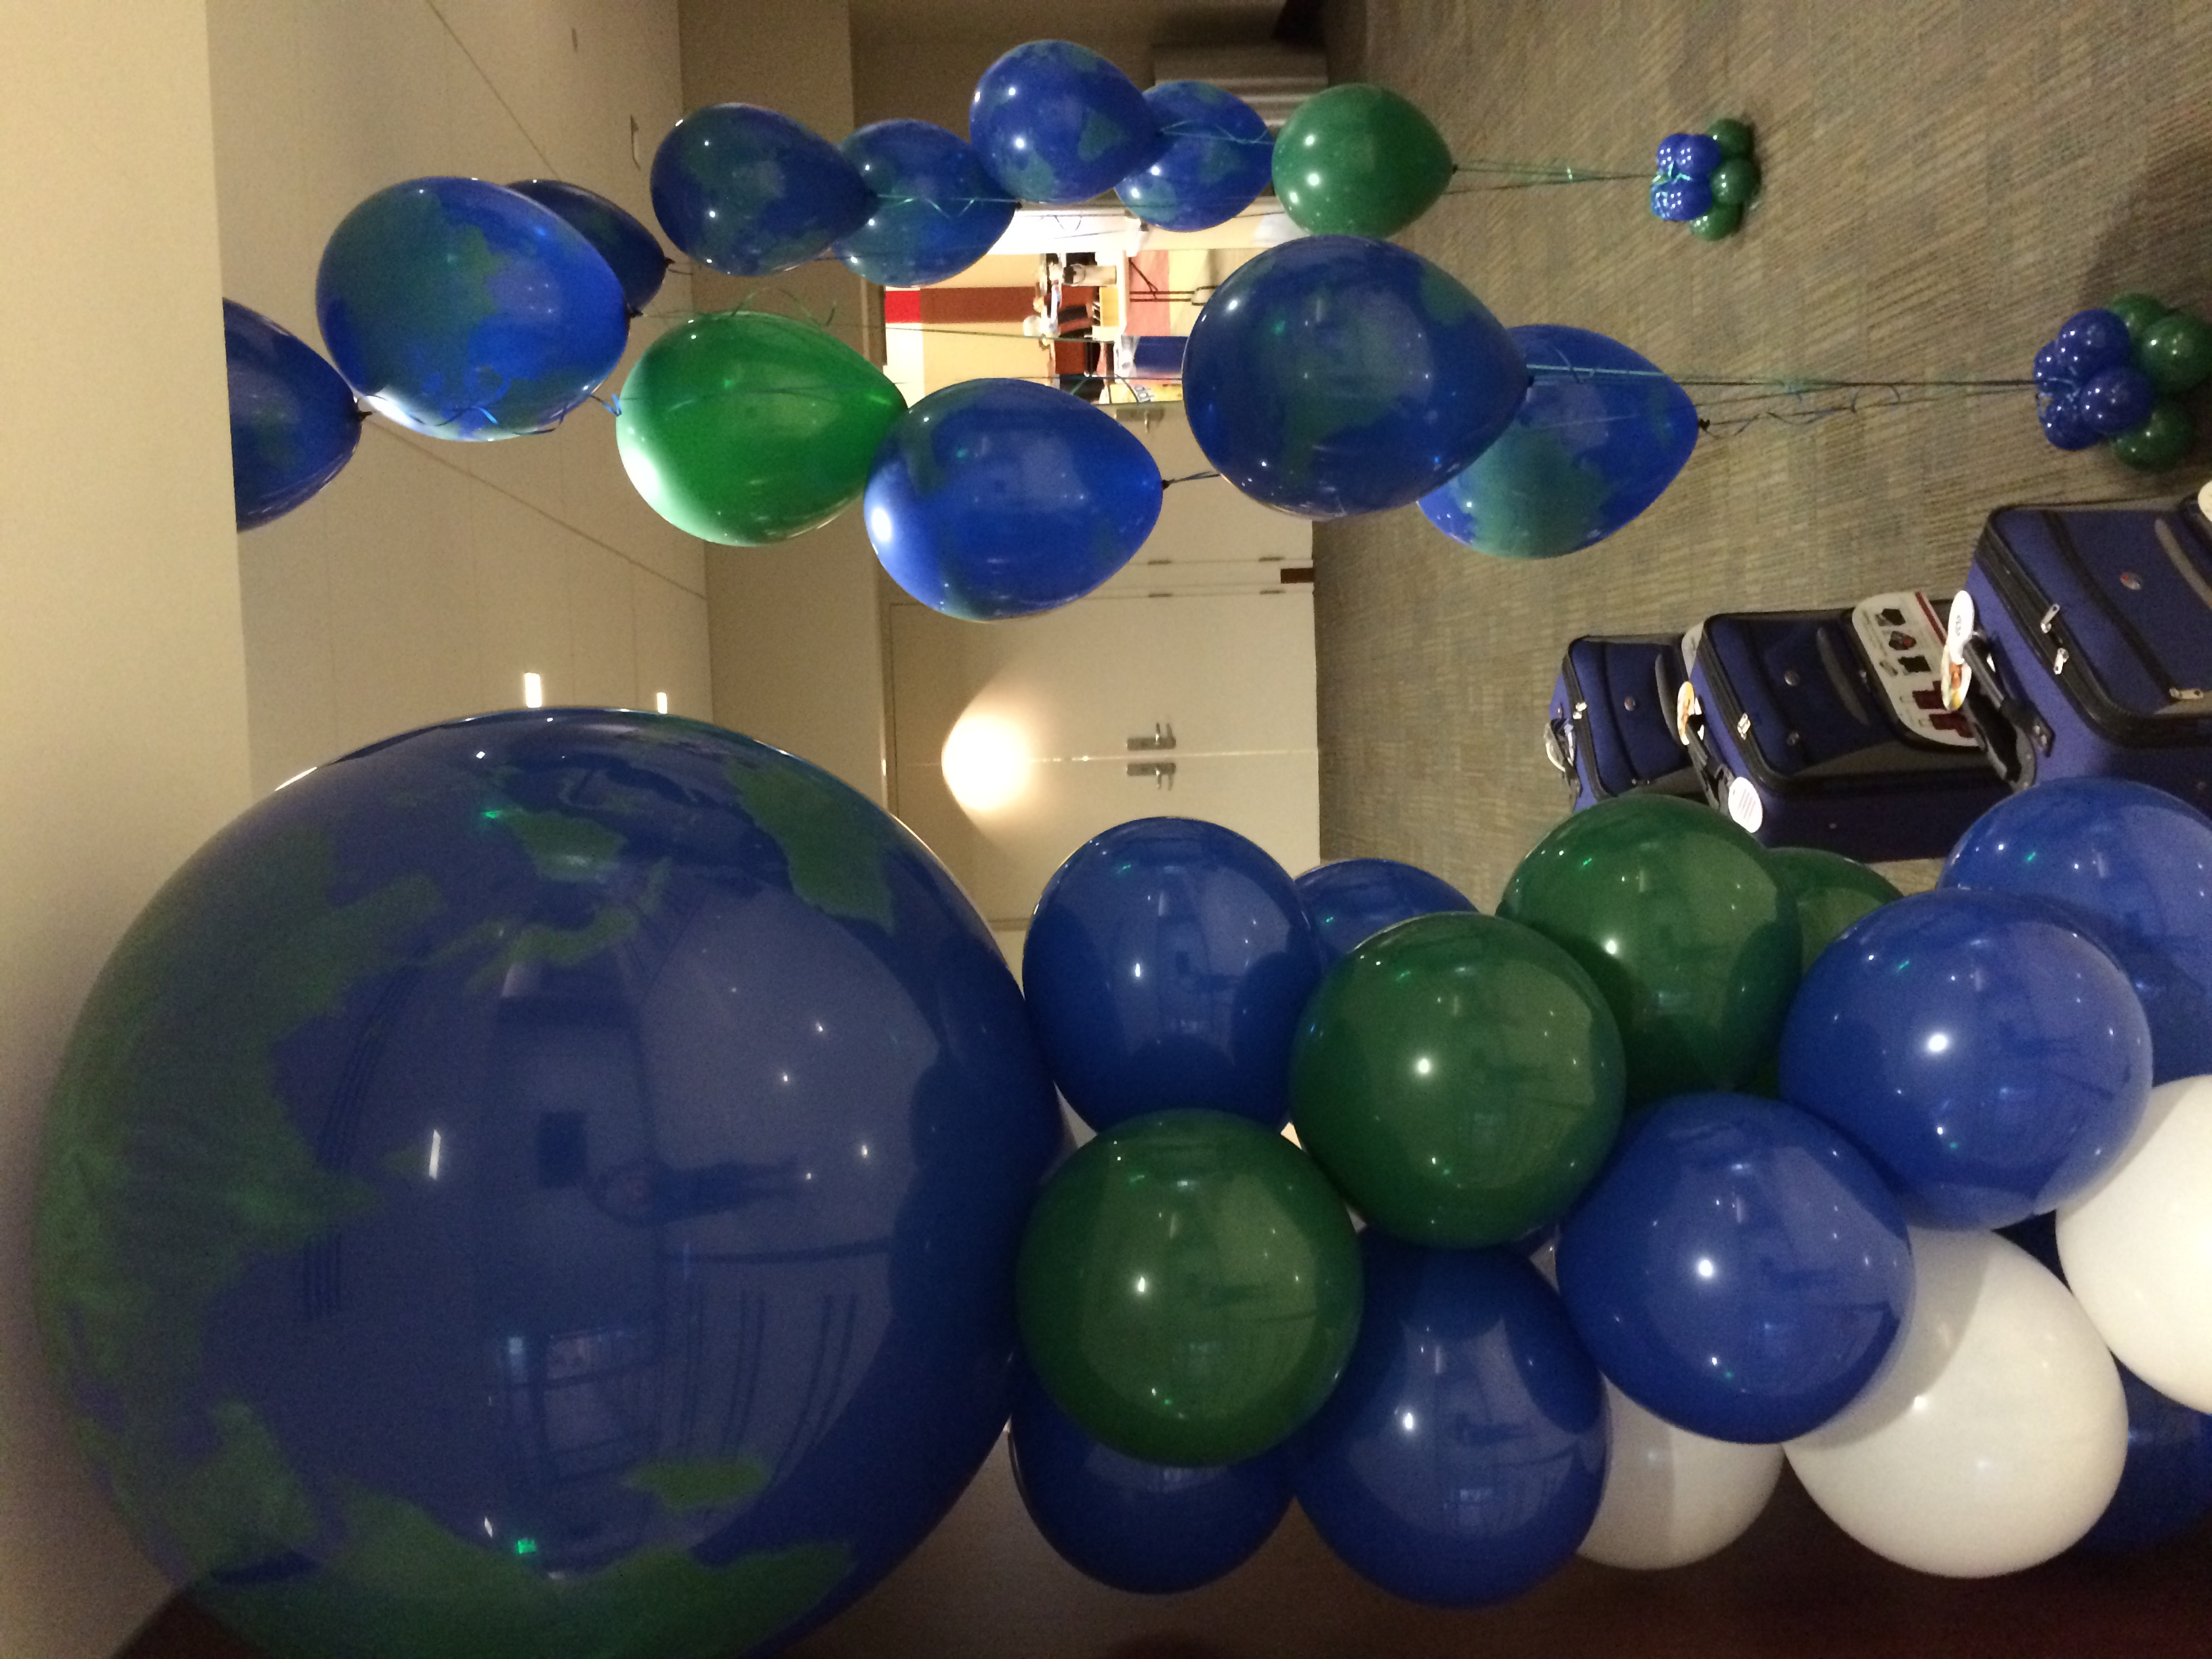 Around the World Balloon Design